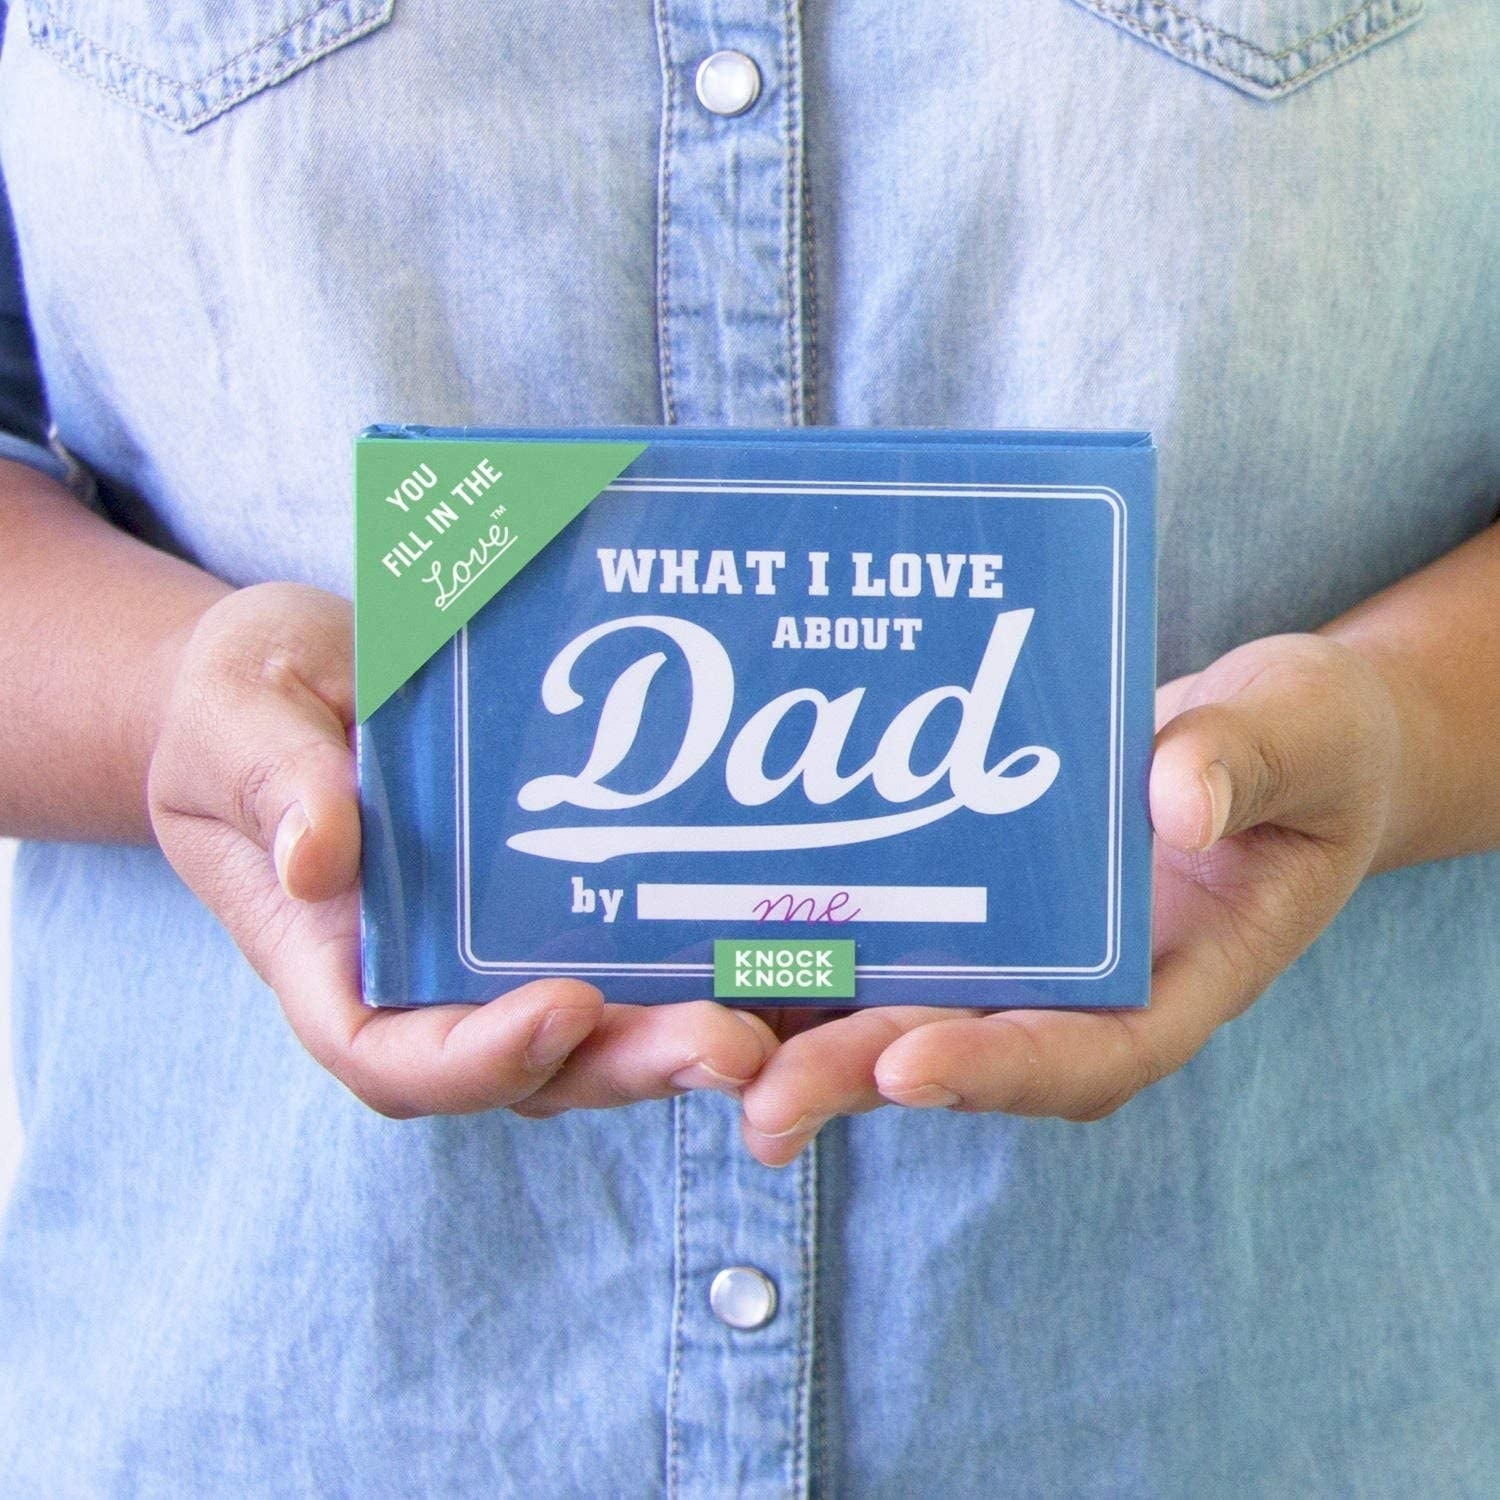 Someone holding up a book called What I love About Dad by: Me